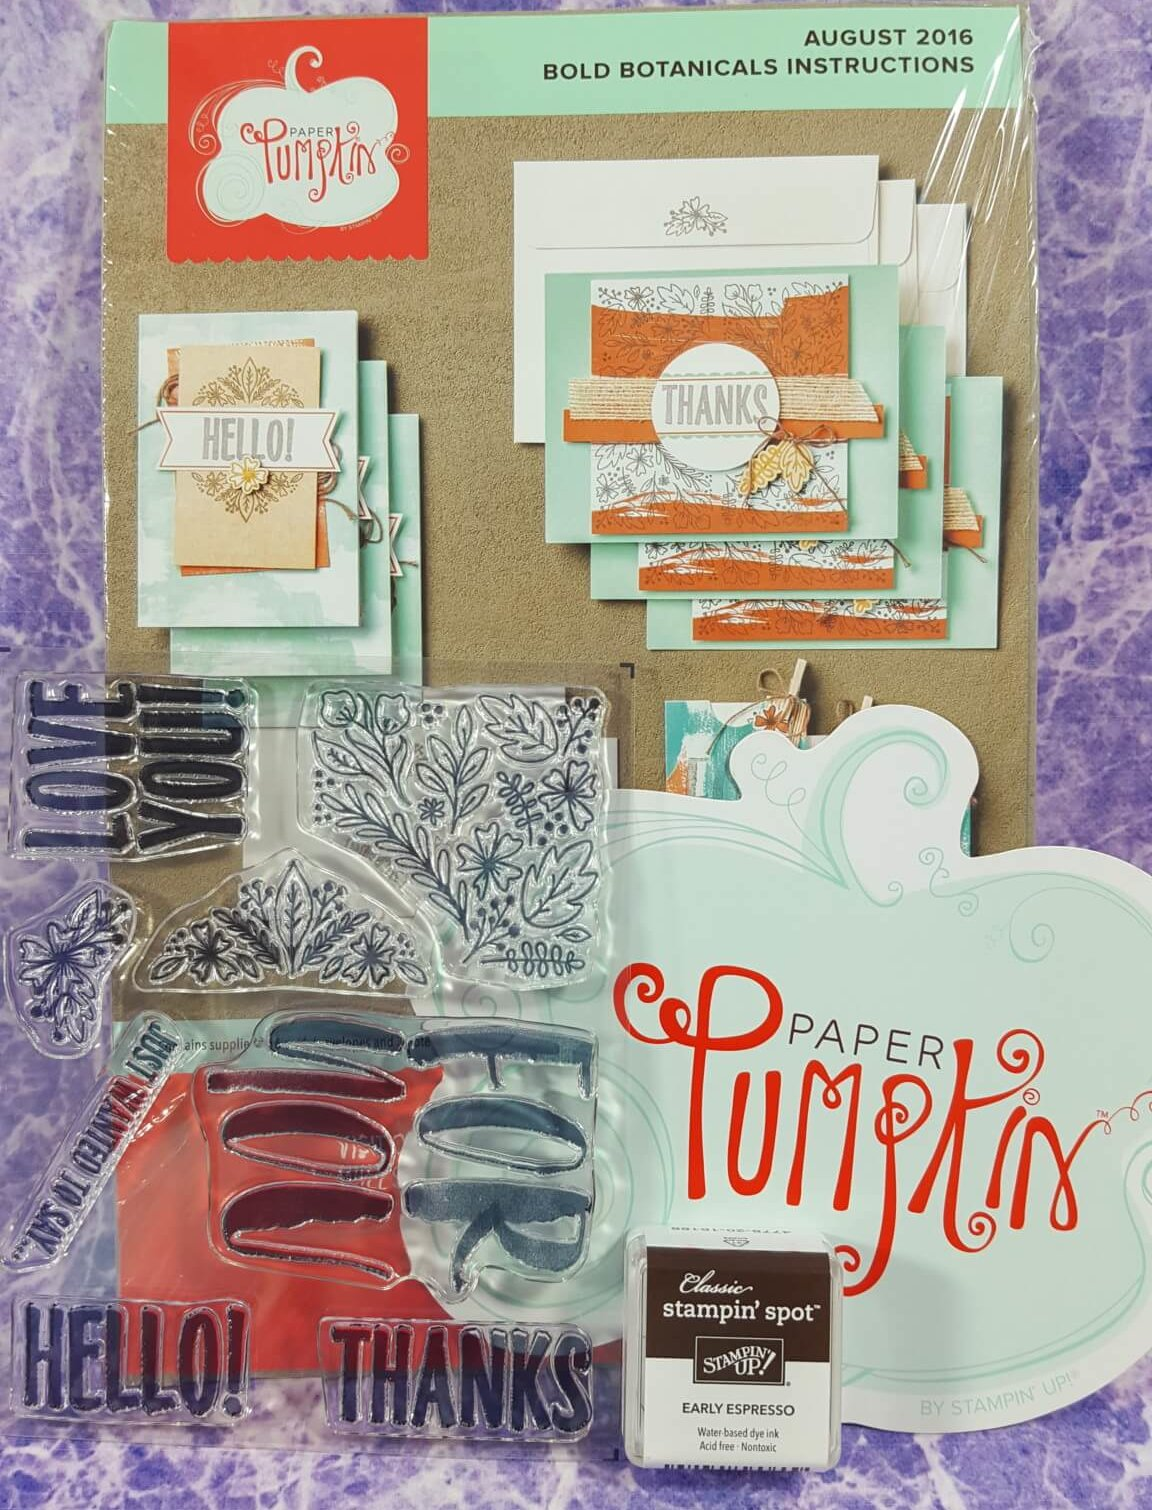 Paper Pumpkin August 2016 Subscription Box Review